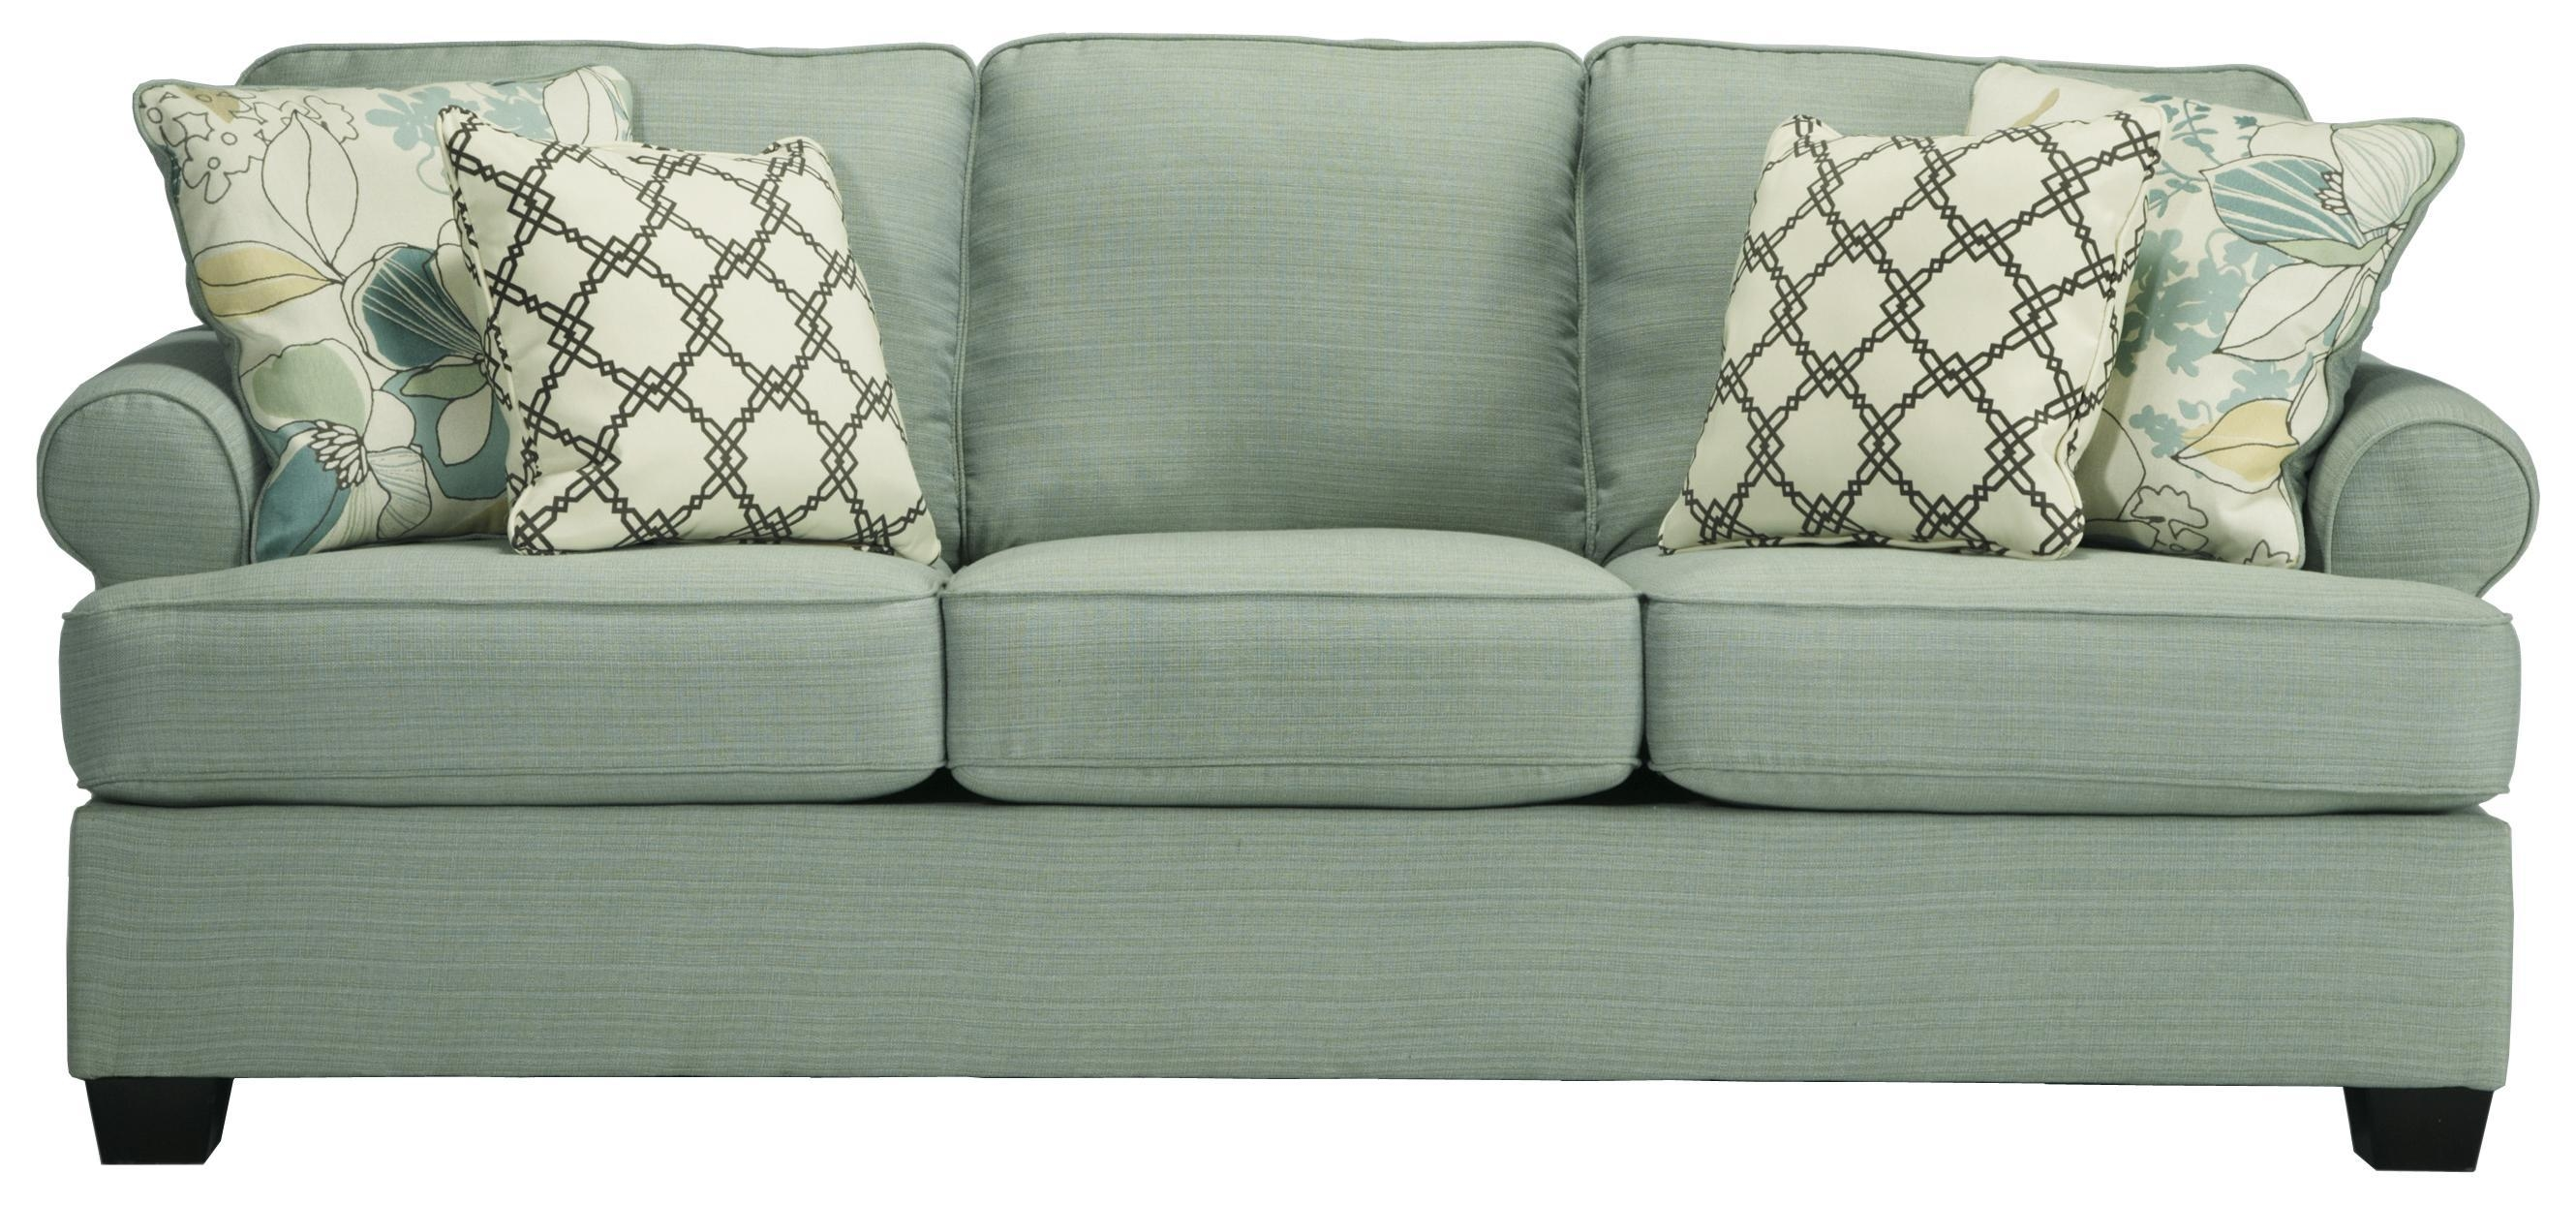 Signature Designashley Daystar – Seafoam Contemporary Queen Within Seafoam Green Couches (Image 17 of 20)